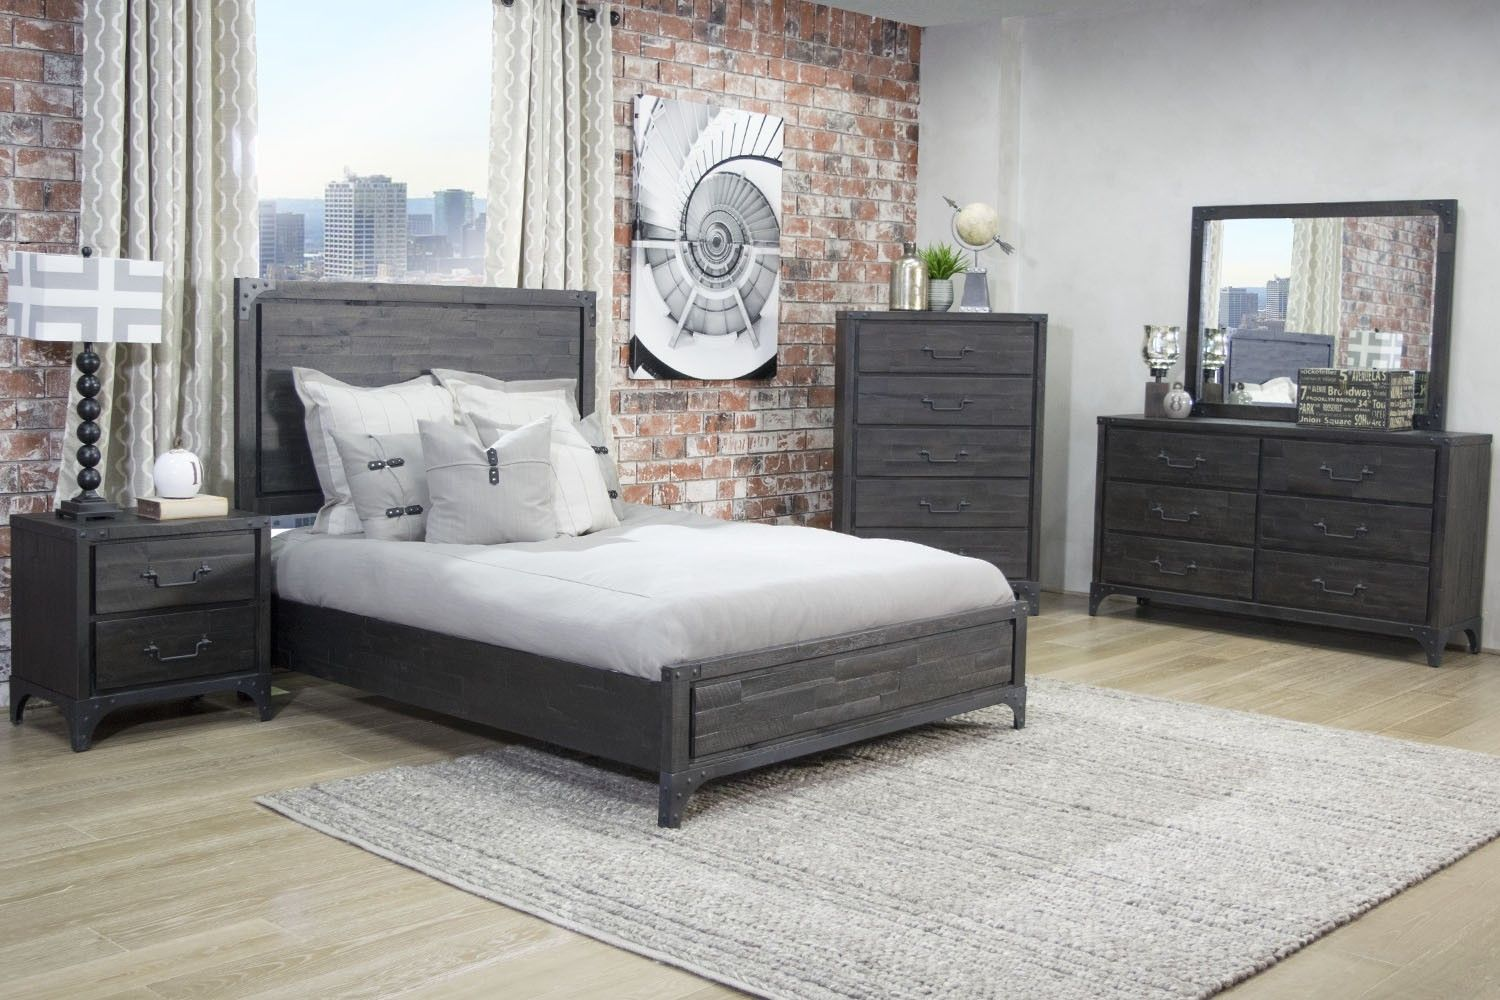 Buxton Bedroom  Bedroom  Mor Furniture for Less